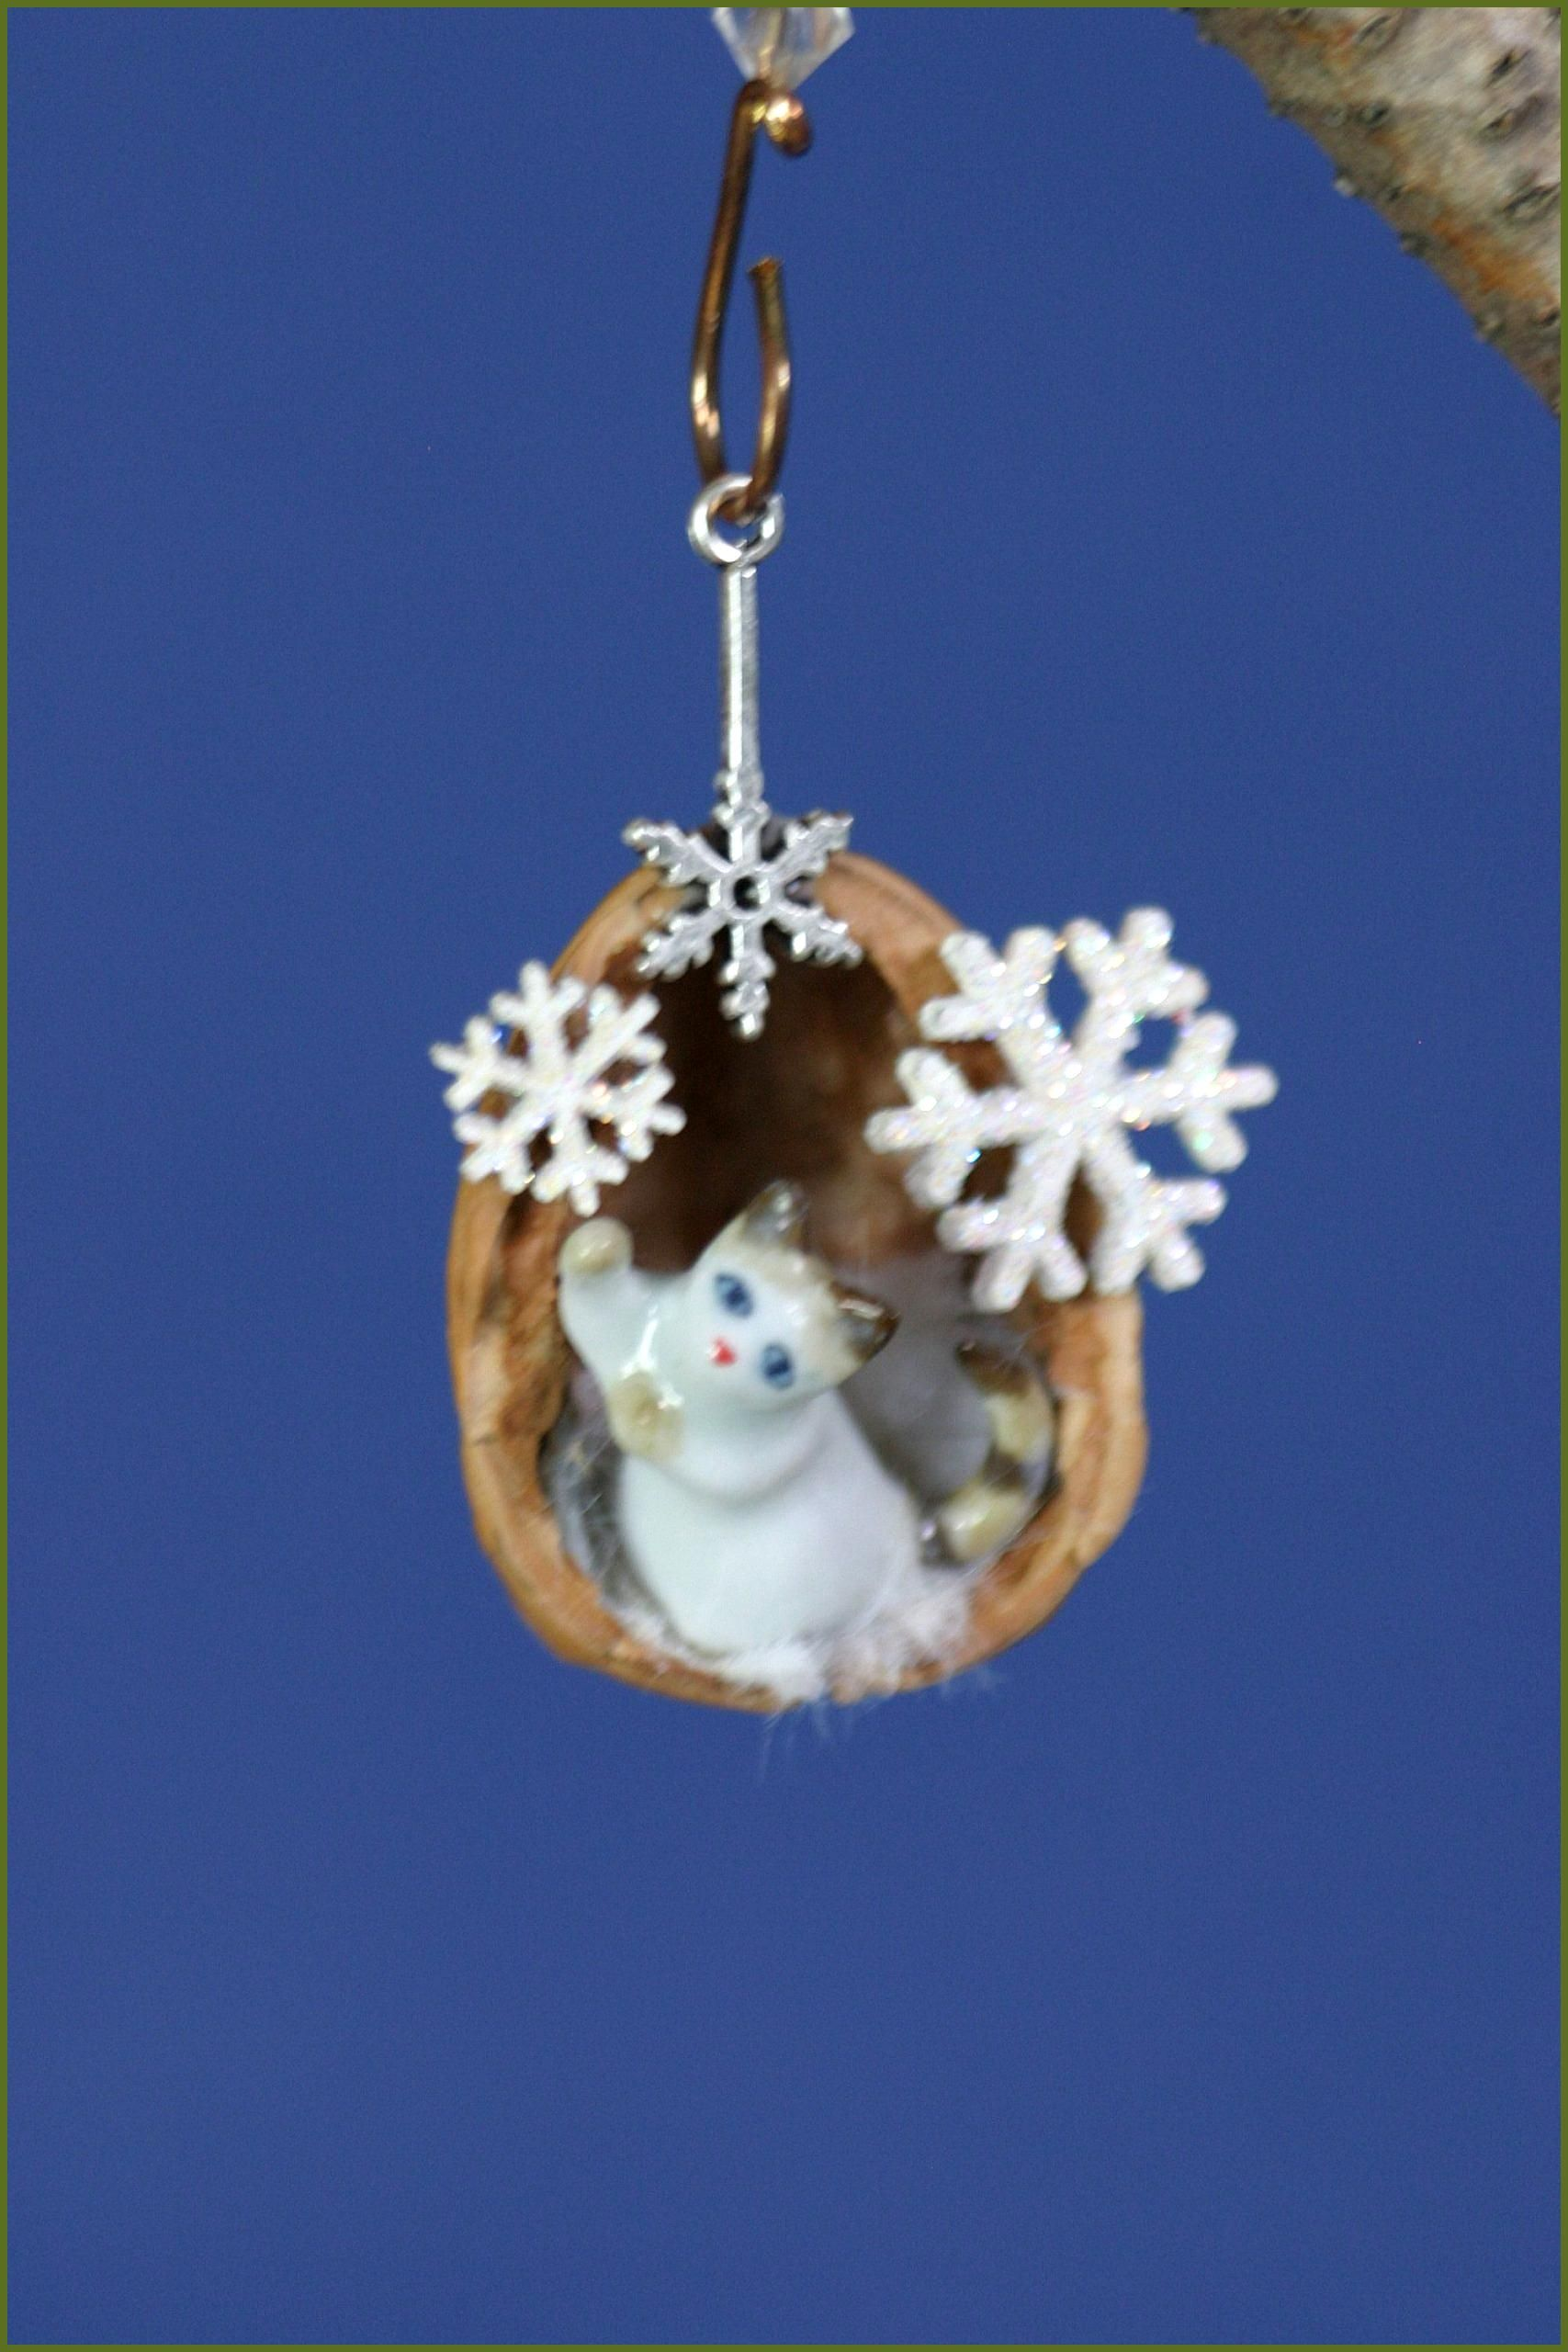 Walnut shell Christmas ornament cat ornament nut shell decoration natural found item cer Walnut shell Christmas ornament cat ornament nut shell decoration natural found i...